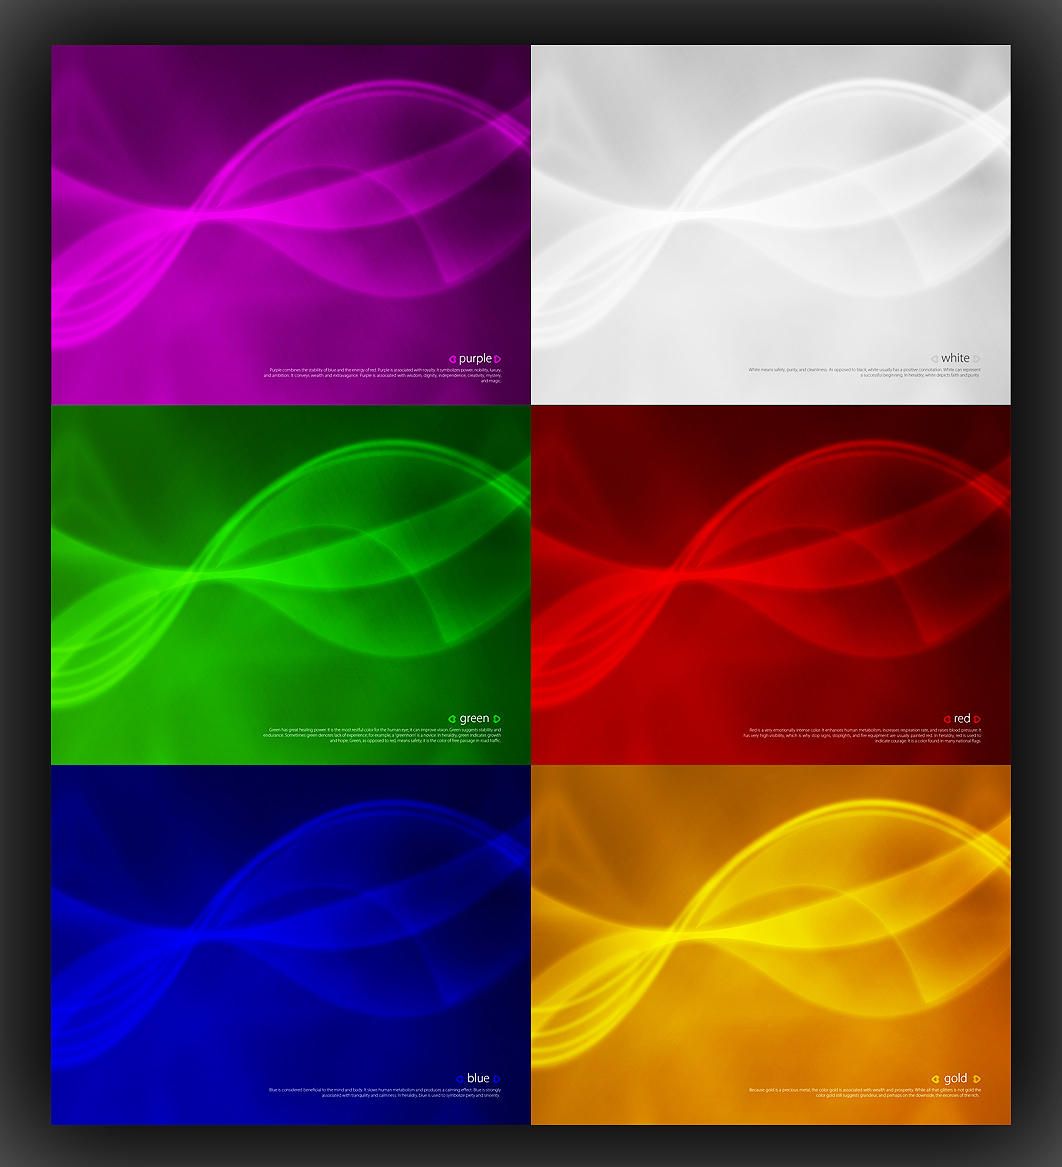 Color Definition In Art : Color meaning wallpapers by xnapflyice on deviantart